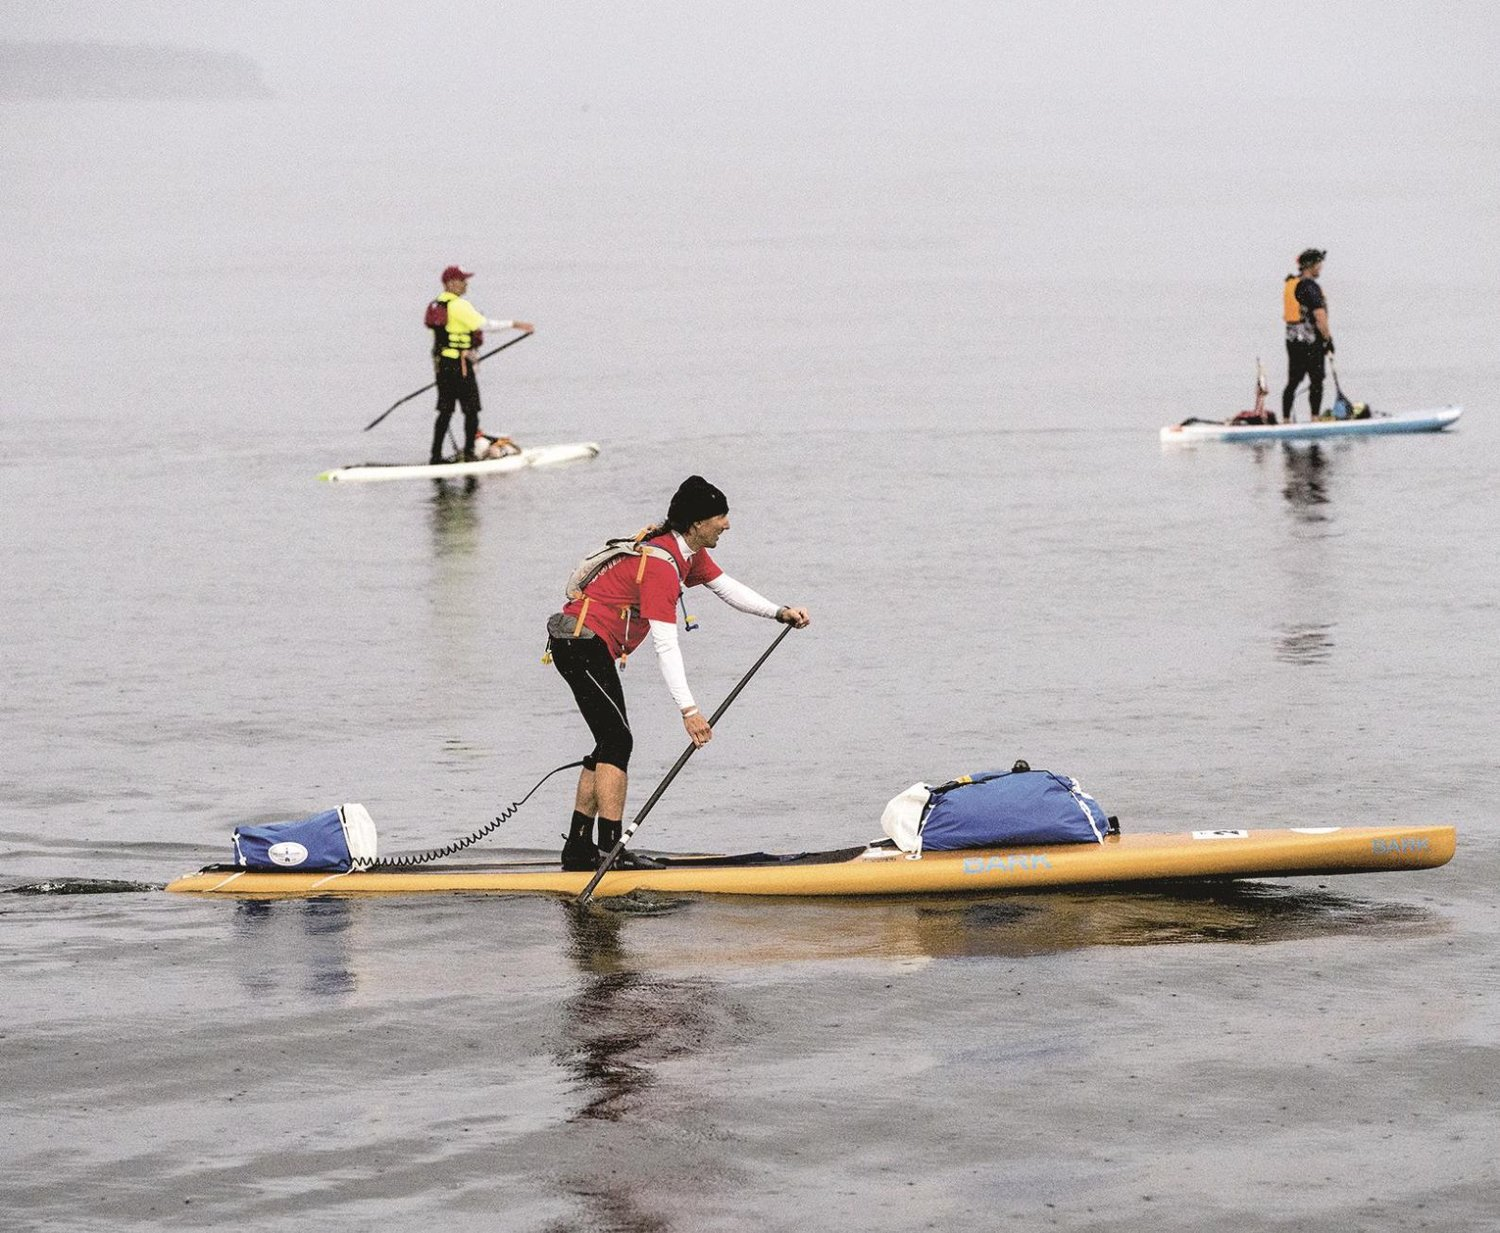 Stand-up paddleboarders, including Karl Kruger of Orcas Island (foreground), started out in June to cross the Strait of Juan de Fuca and paddle on to Victoria for the first leg of the third Race to Alaska, the 750-mile race from Port Townsend to Ketchikan, Alaska. Kruger went on to become the first person to finish the R2AK race on a stand-up paddleboard.